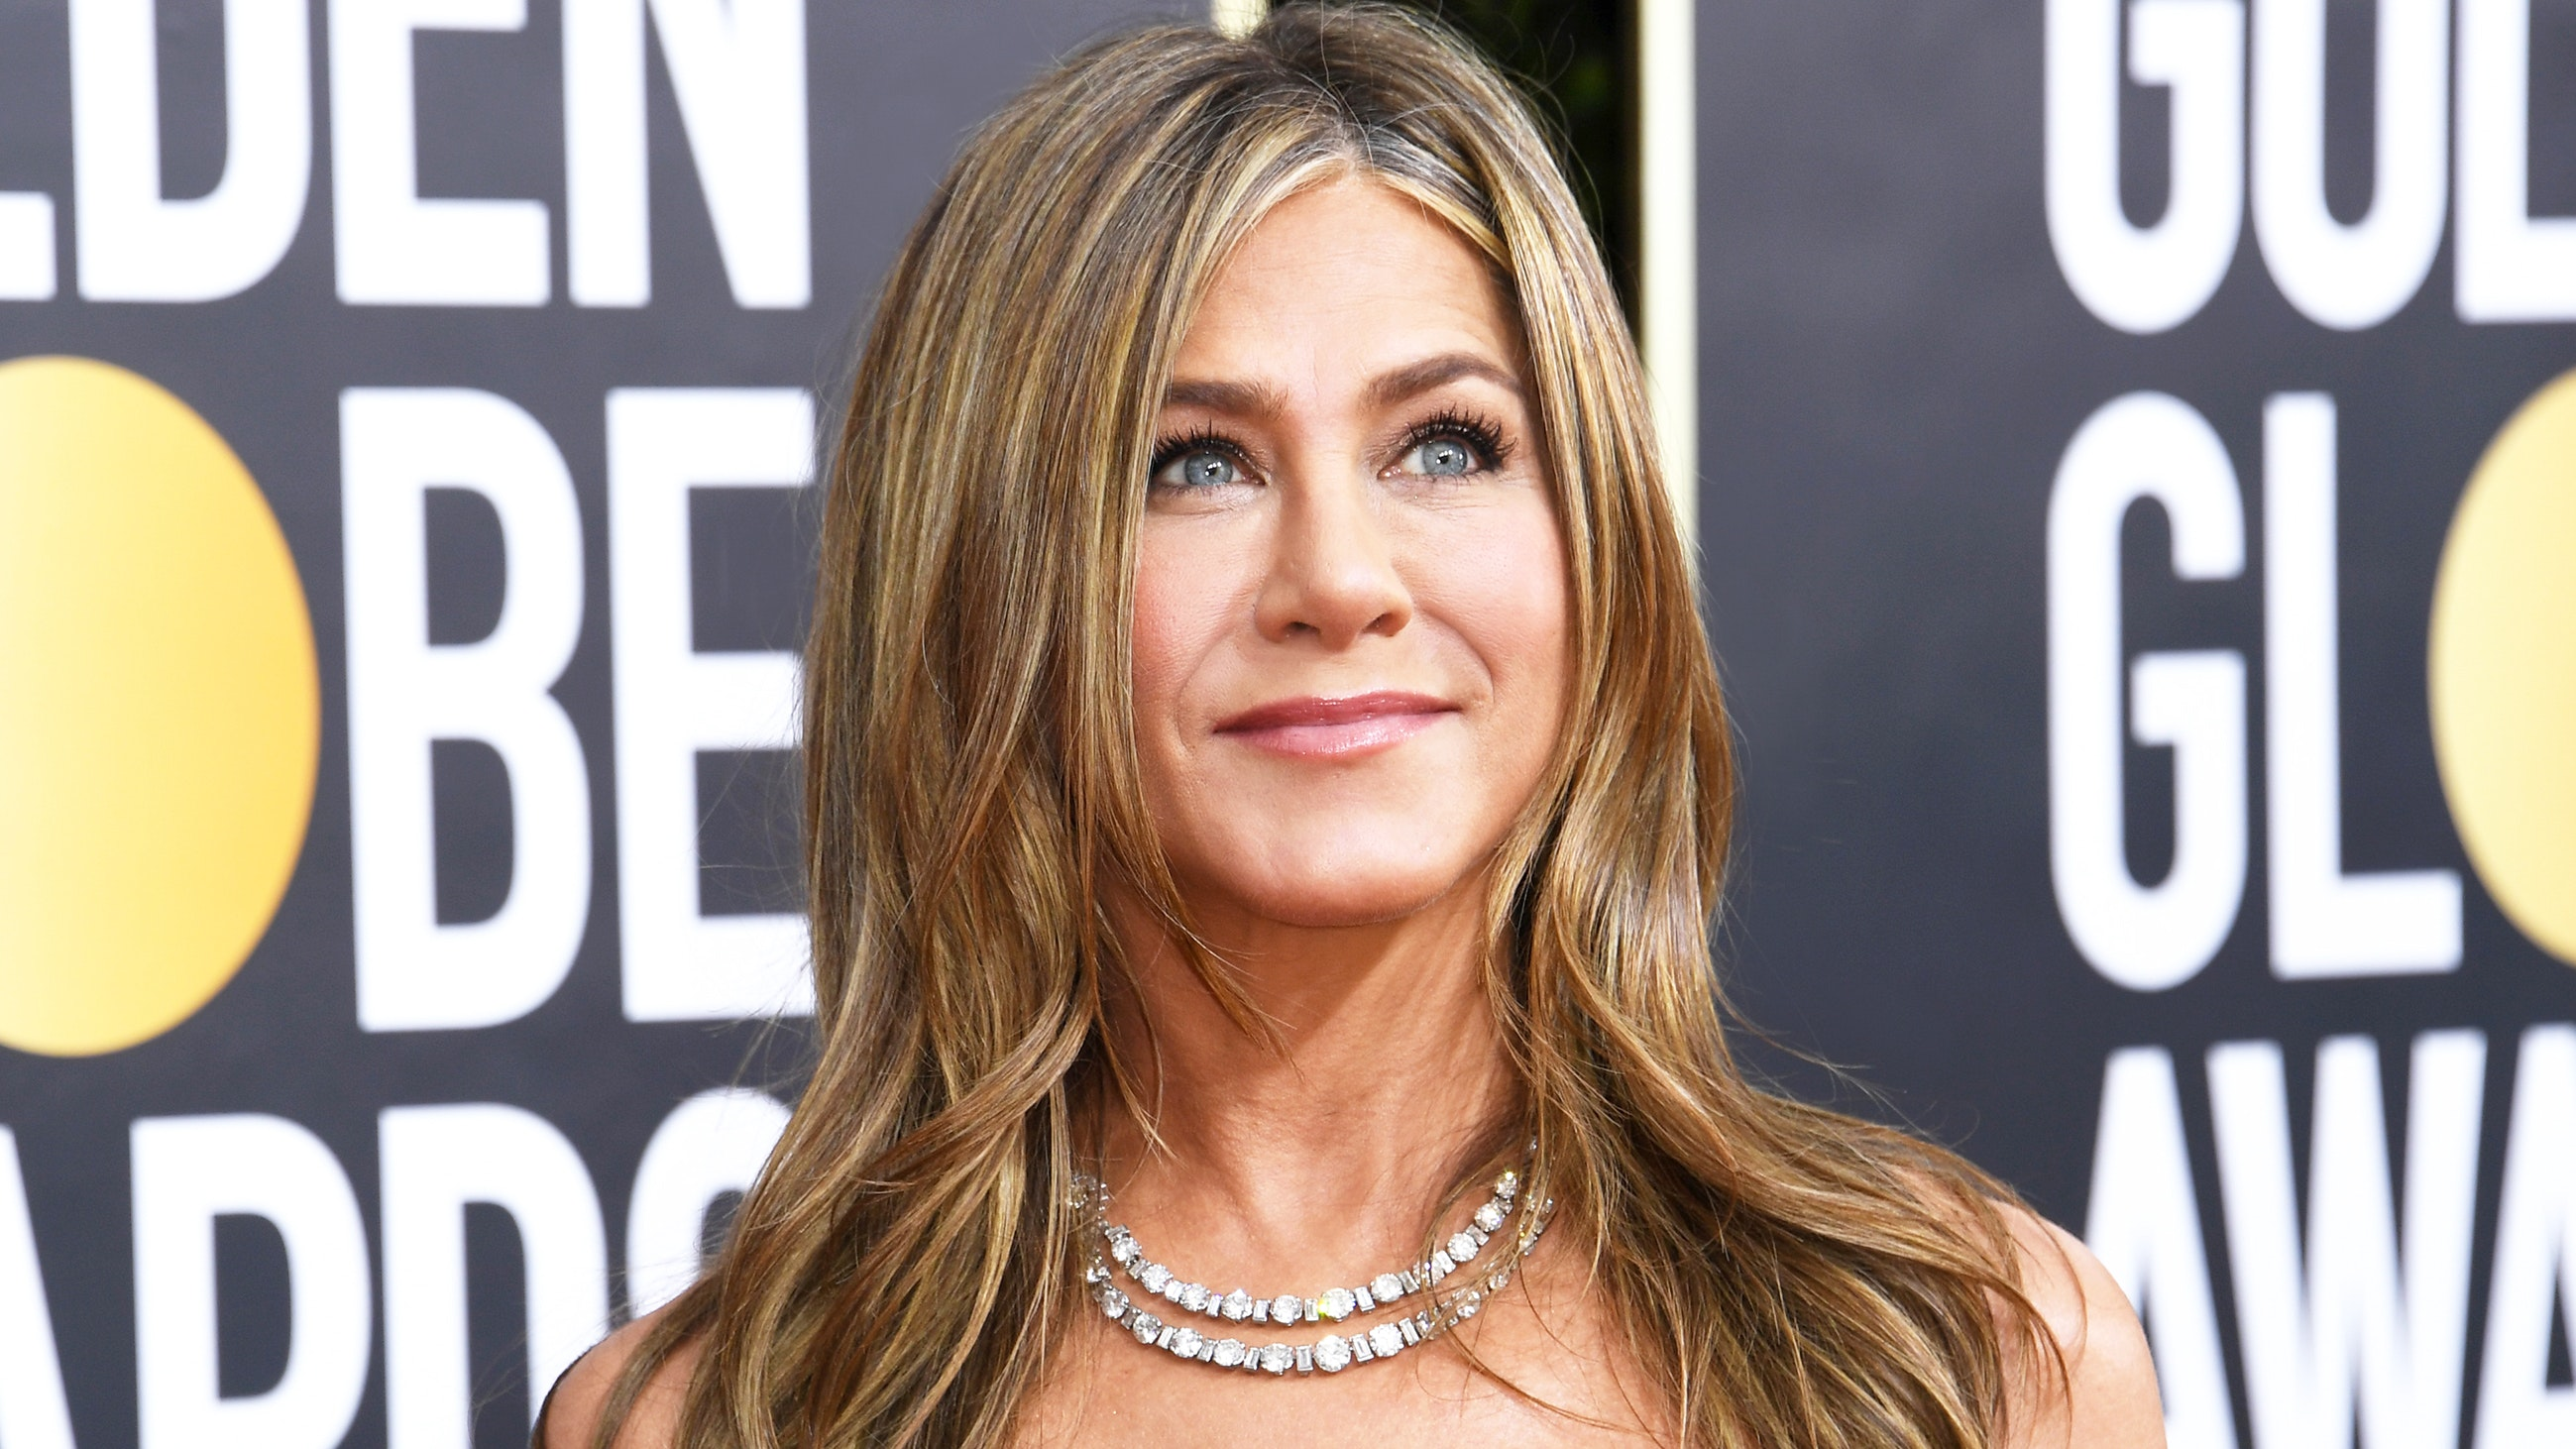 Jennifer Aniston Golden Globes beauty look 2020